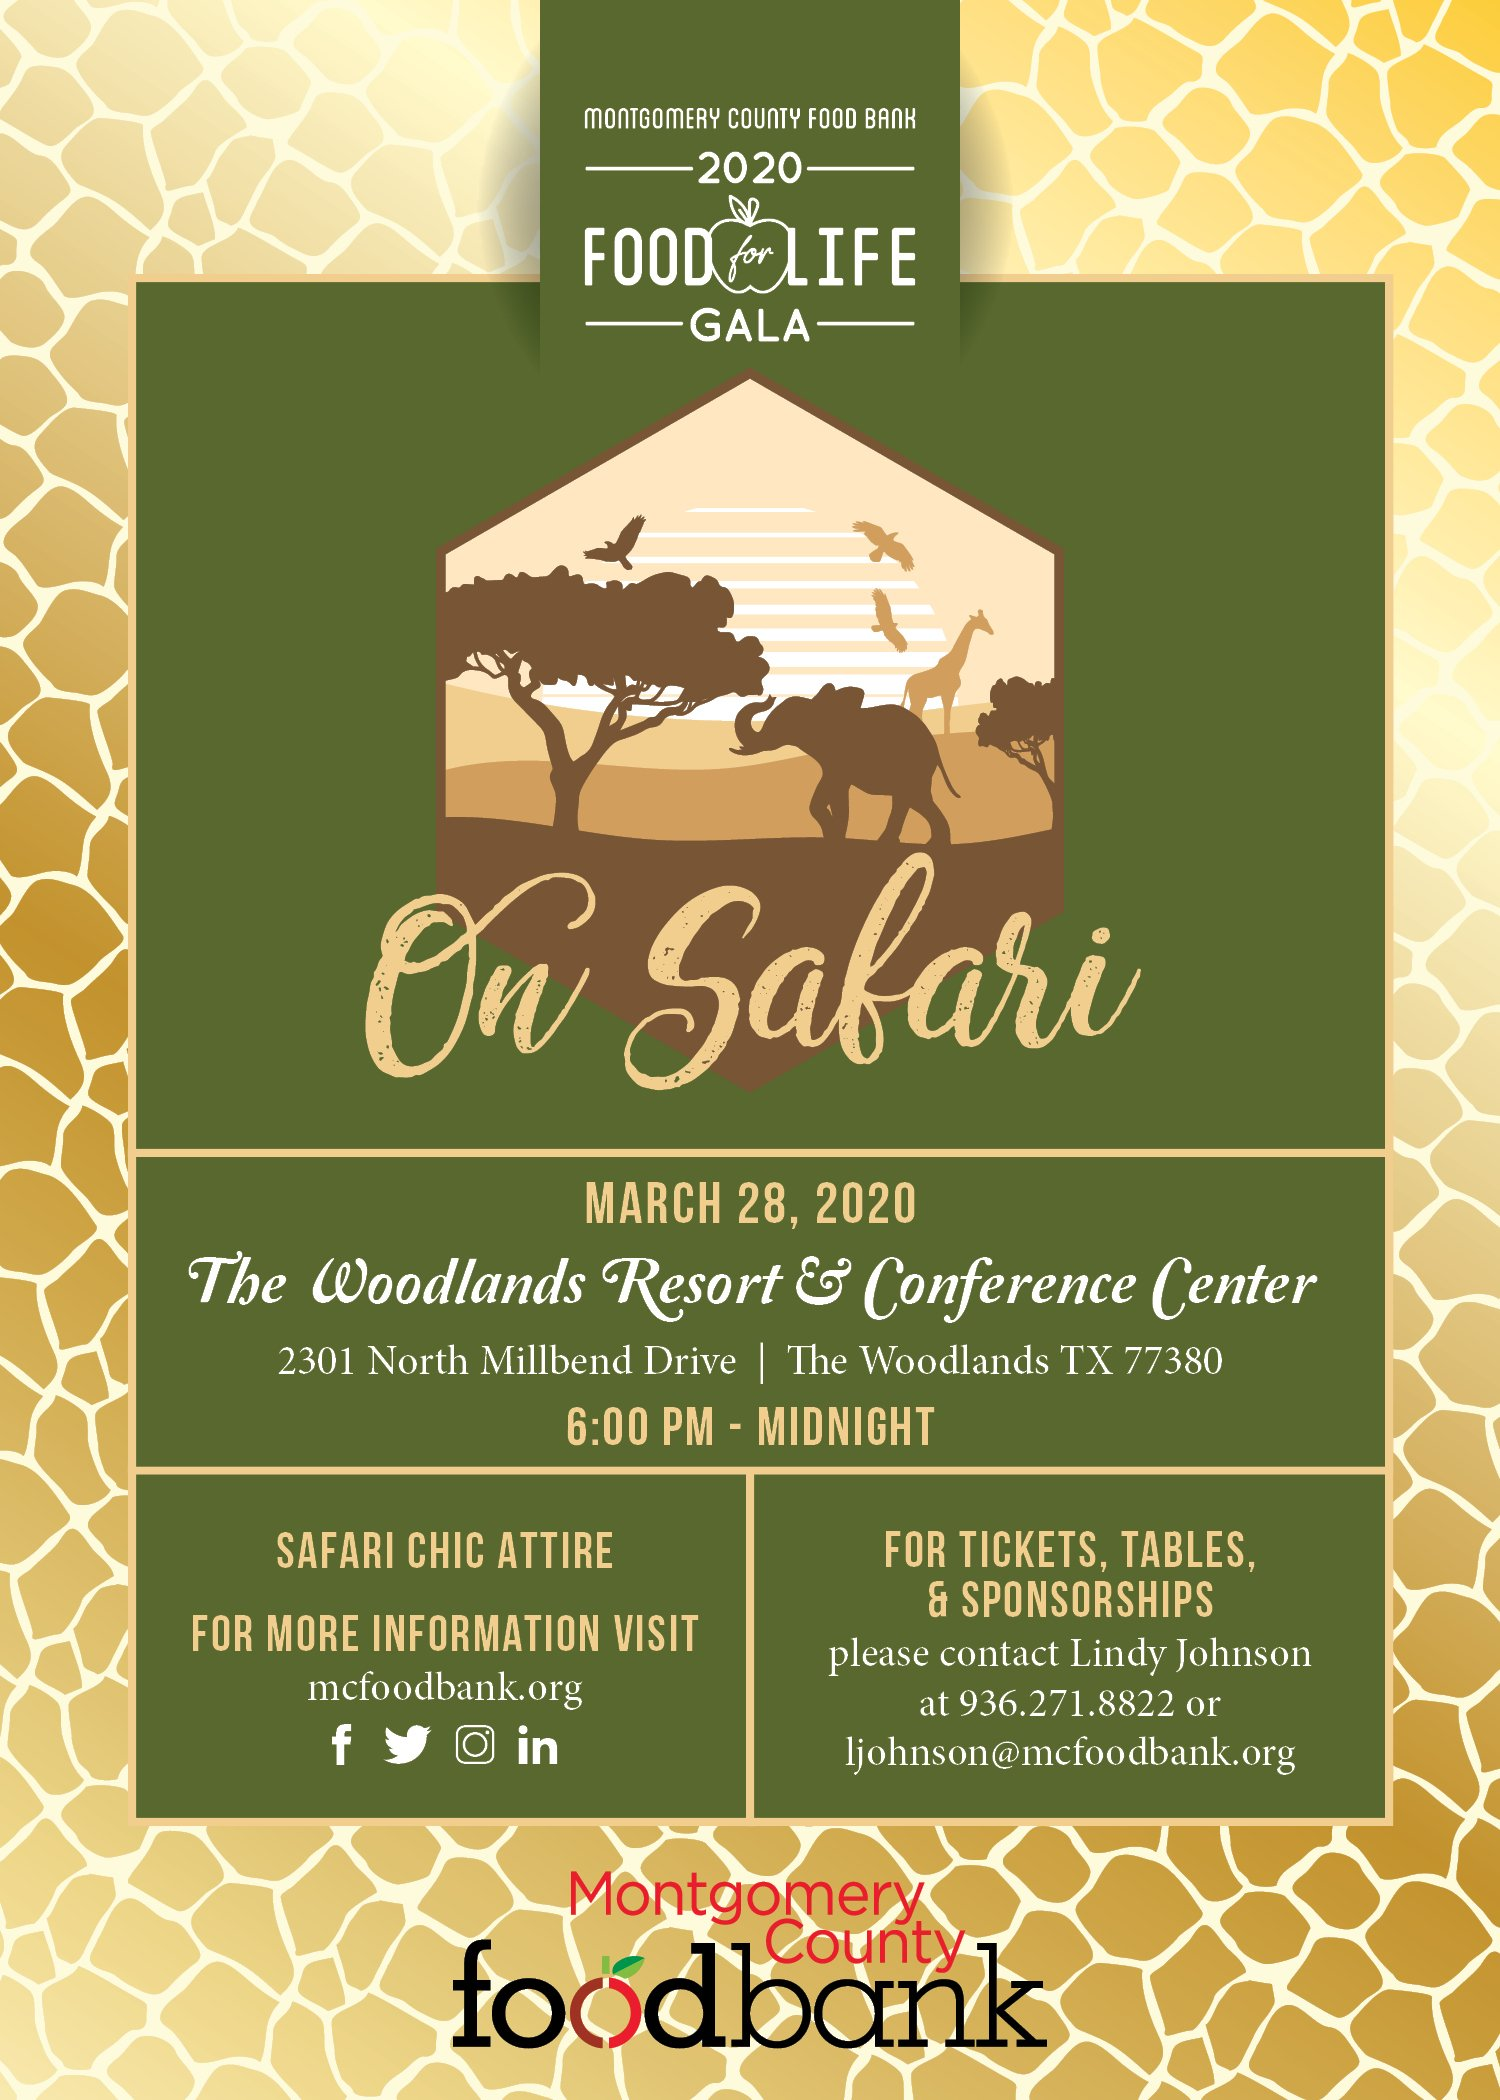 On Safari Food For Life Gala